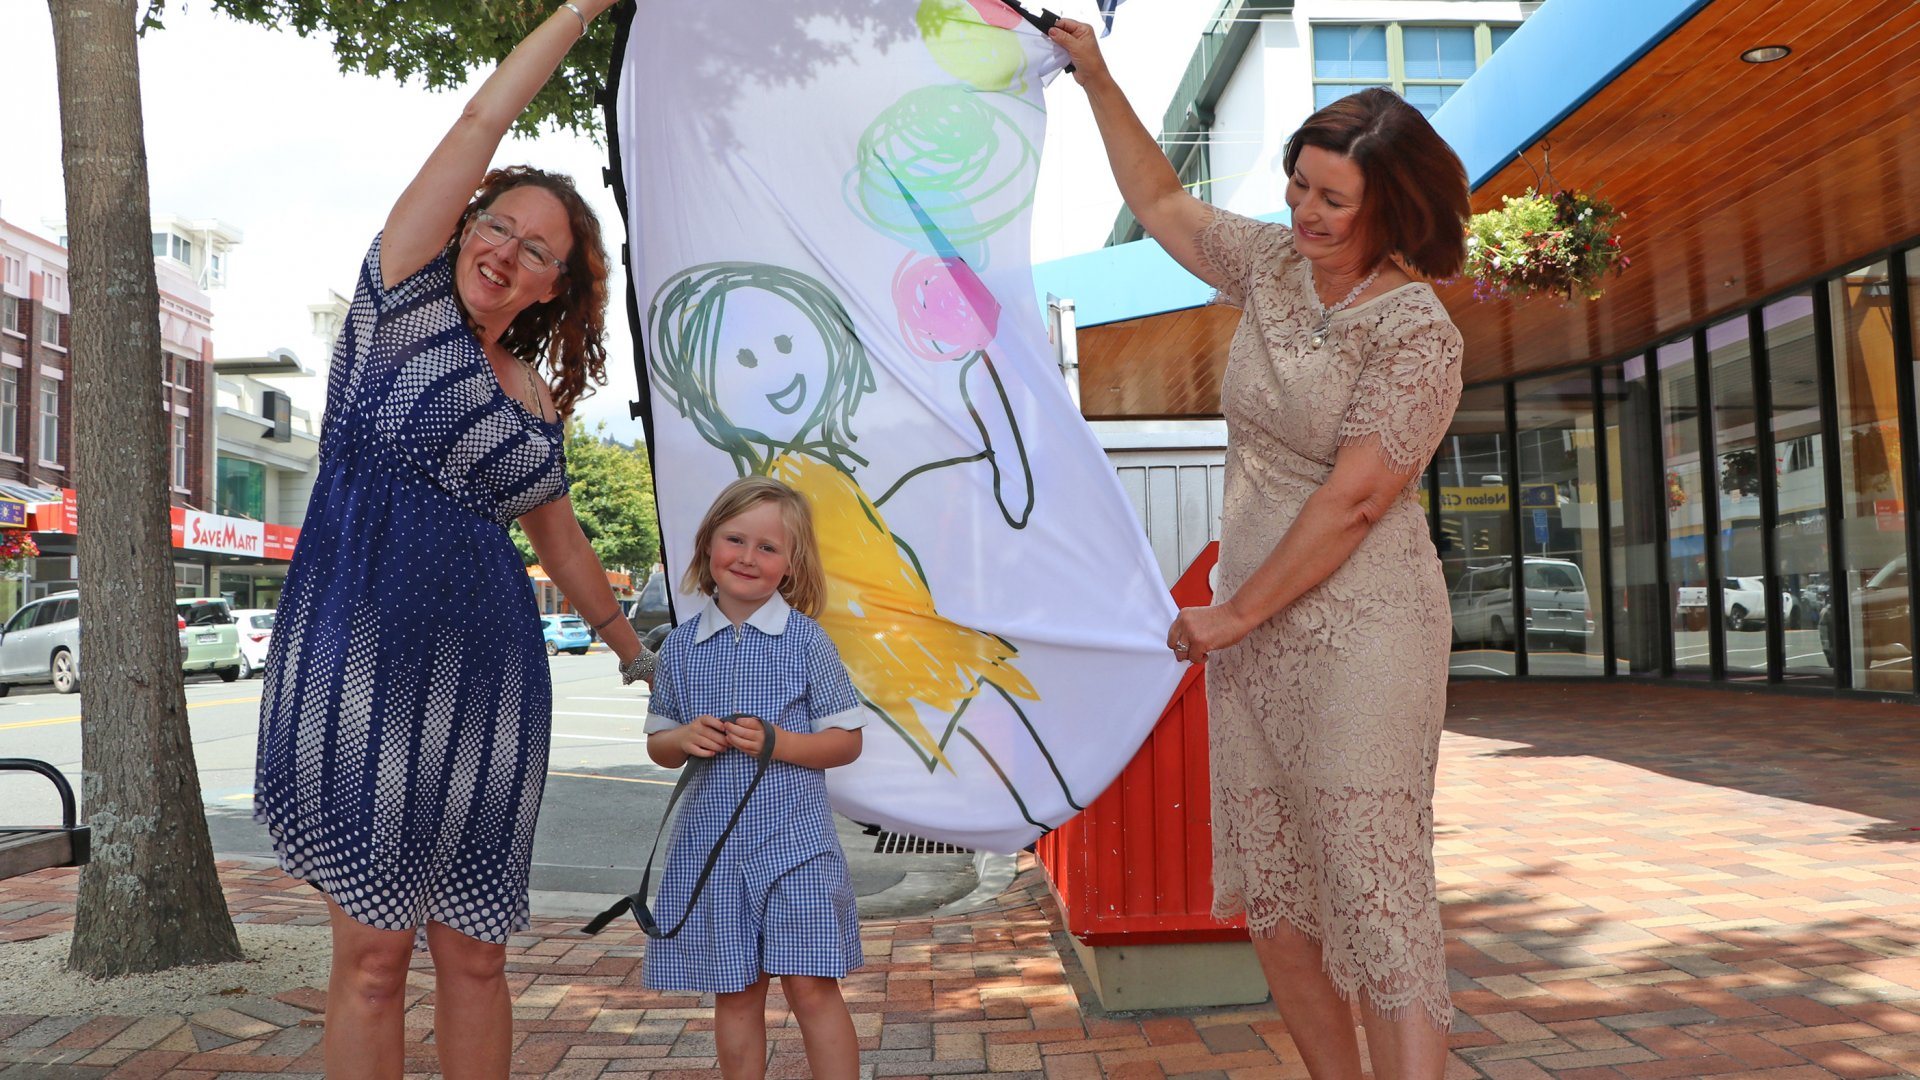 Rebekah Malthus, left, with daughter Jeanie Hicks, 5, and Mayor Rachel Reese check out the flag bearing Jeanie's artwork before it was raised outside Civic House on Tuesday.